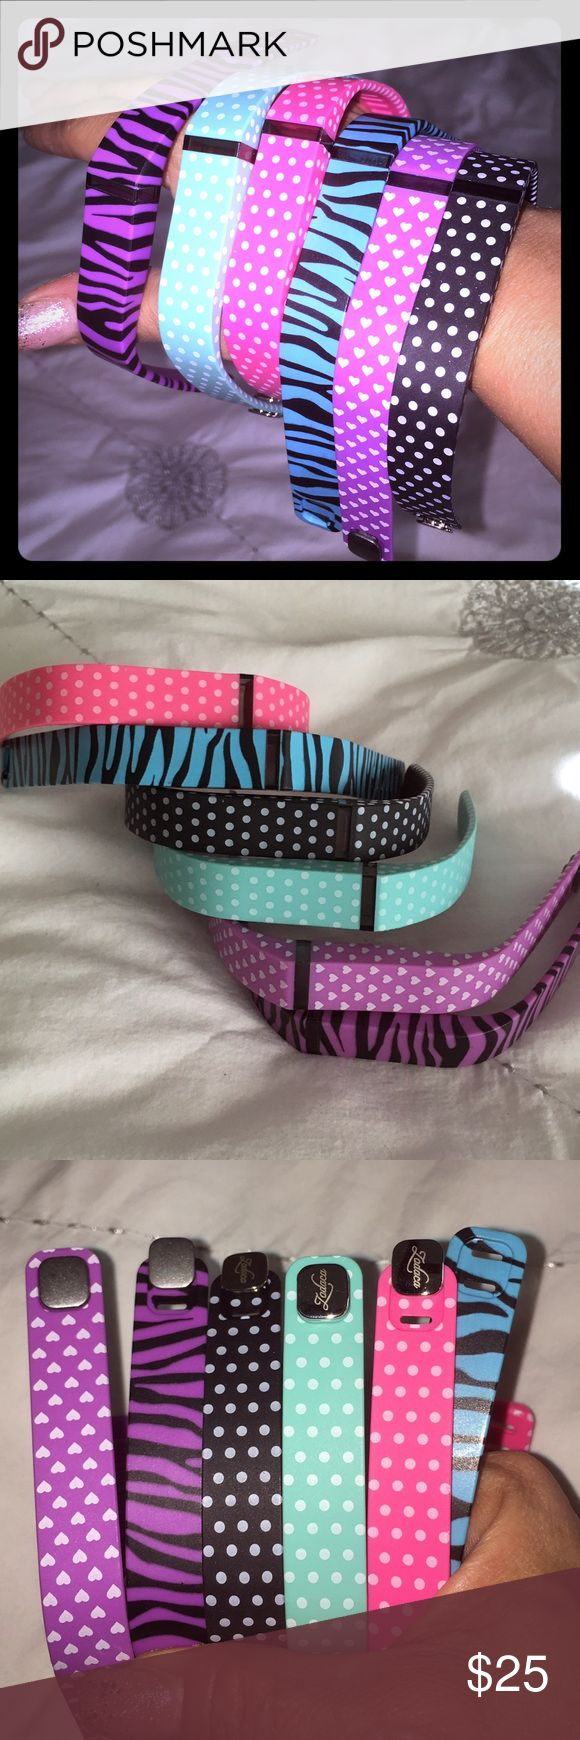 (6) Fitbit Flex Wrist Bands - Fabulous ❤️ 💋 Amazing Colors - Never Used 💋 Blue Zebra is missing removable metal bracket - can be borrowed from other colors! Great Deal!! Accessories